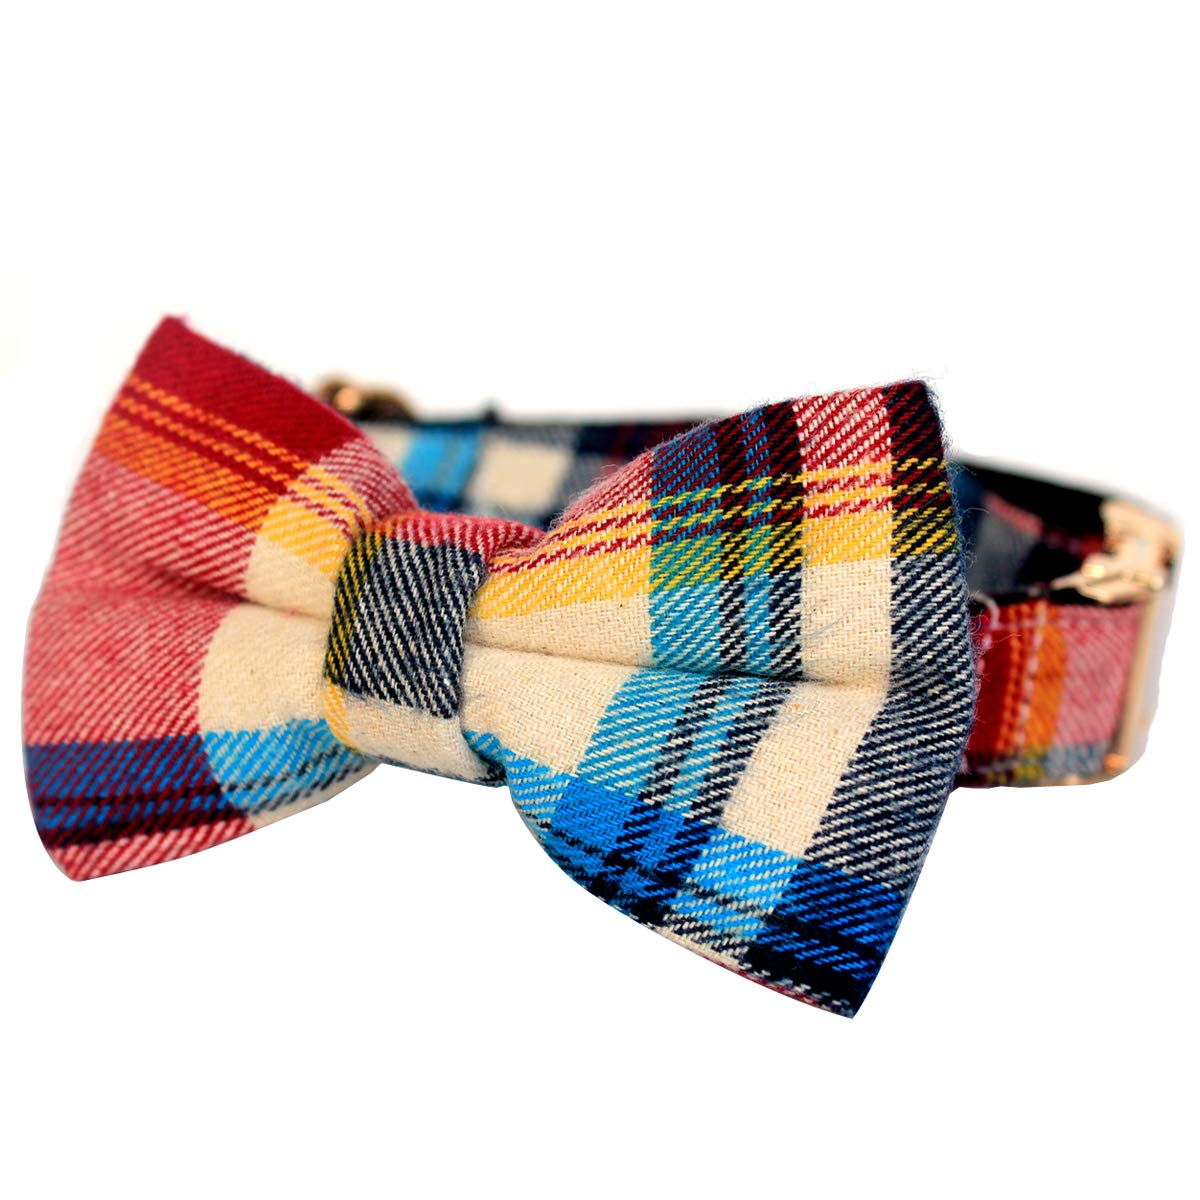 Csspet Red and bluee Plaid Cat and Dog Collar Bow Tie, Handmade Dog Bow tie Necklace for XS Small Dog Cat